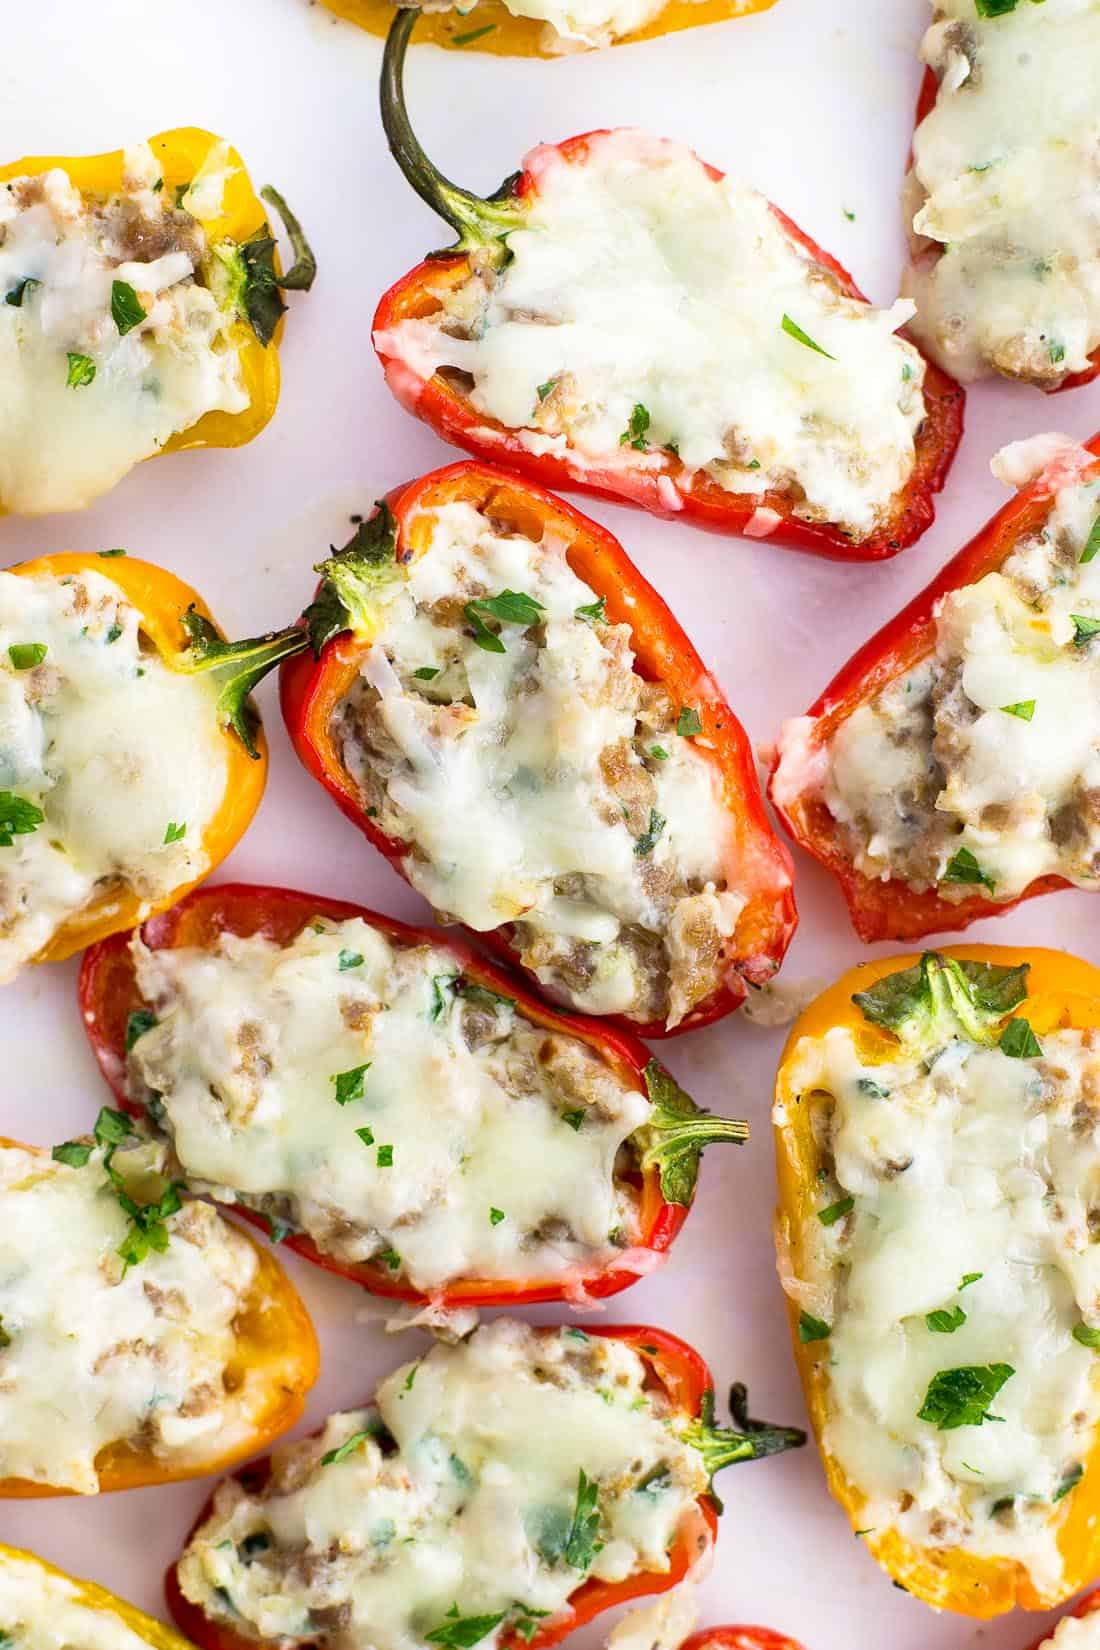 Sausage stuffed mini peppers on a serving plate sprinkled with fresh herbs